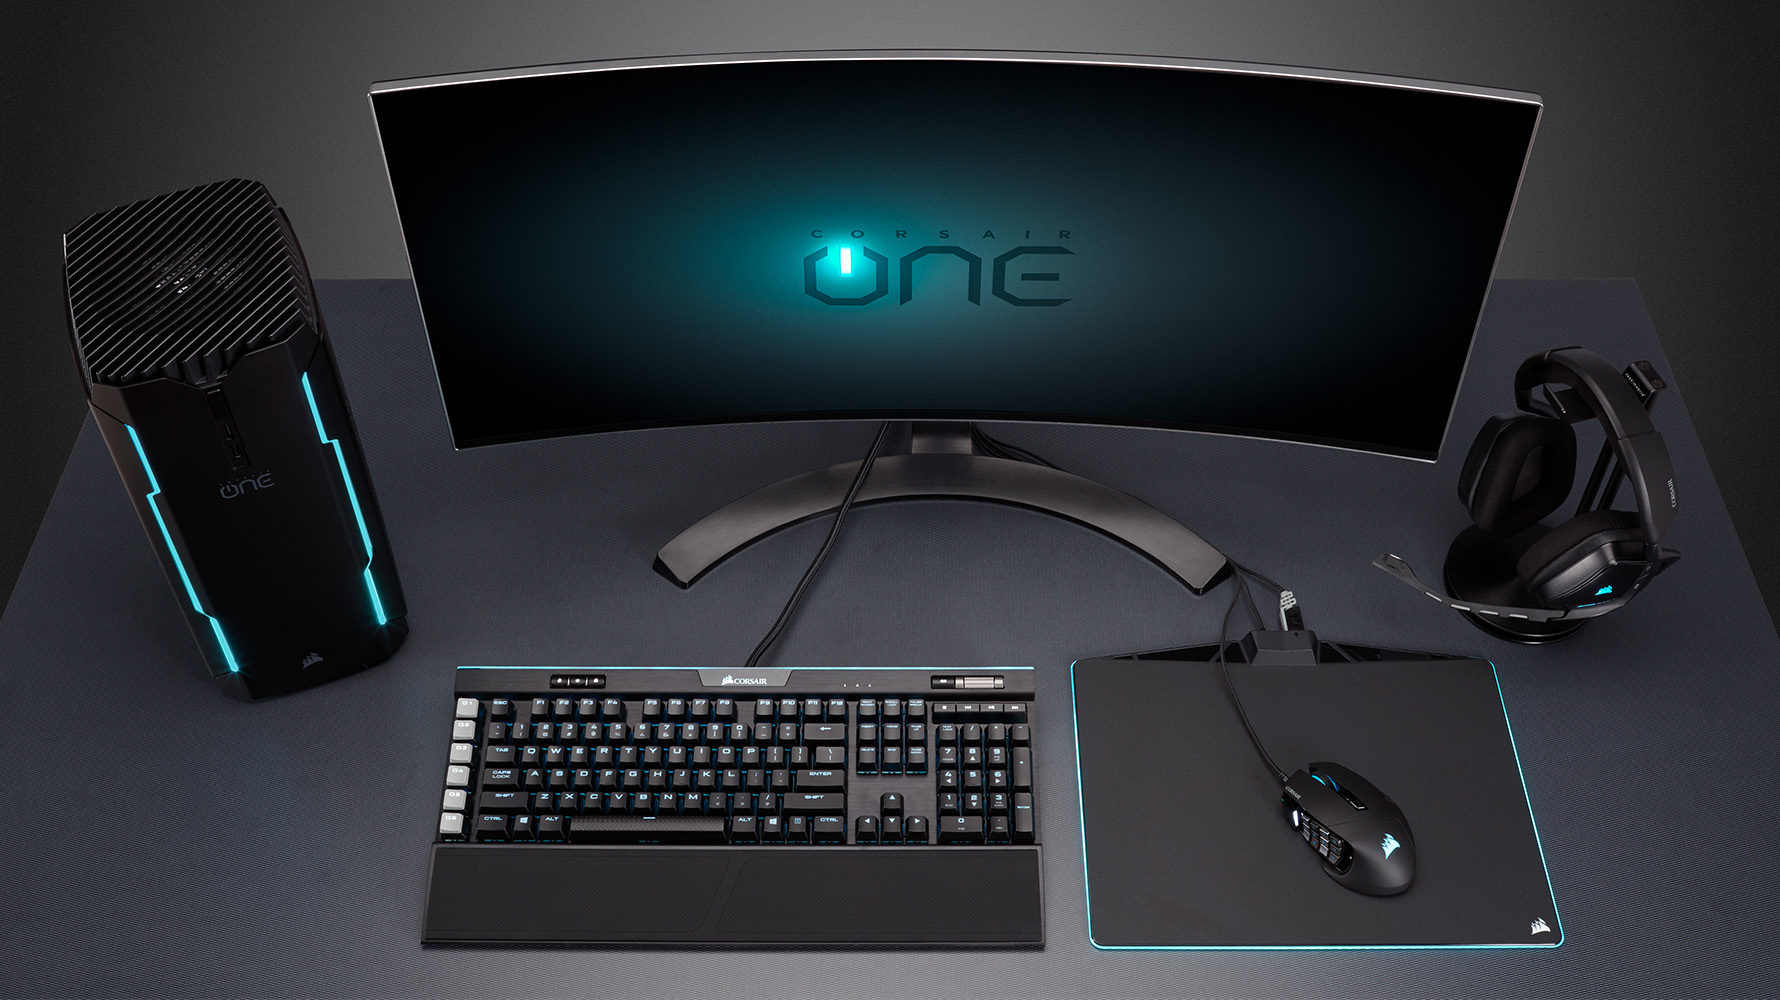 Corsair one review a console like pc in the age of pc like consoles the verge - Console meaning in computer ...